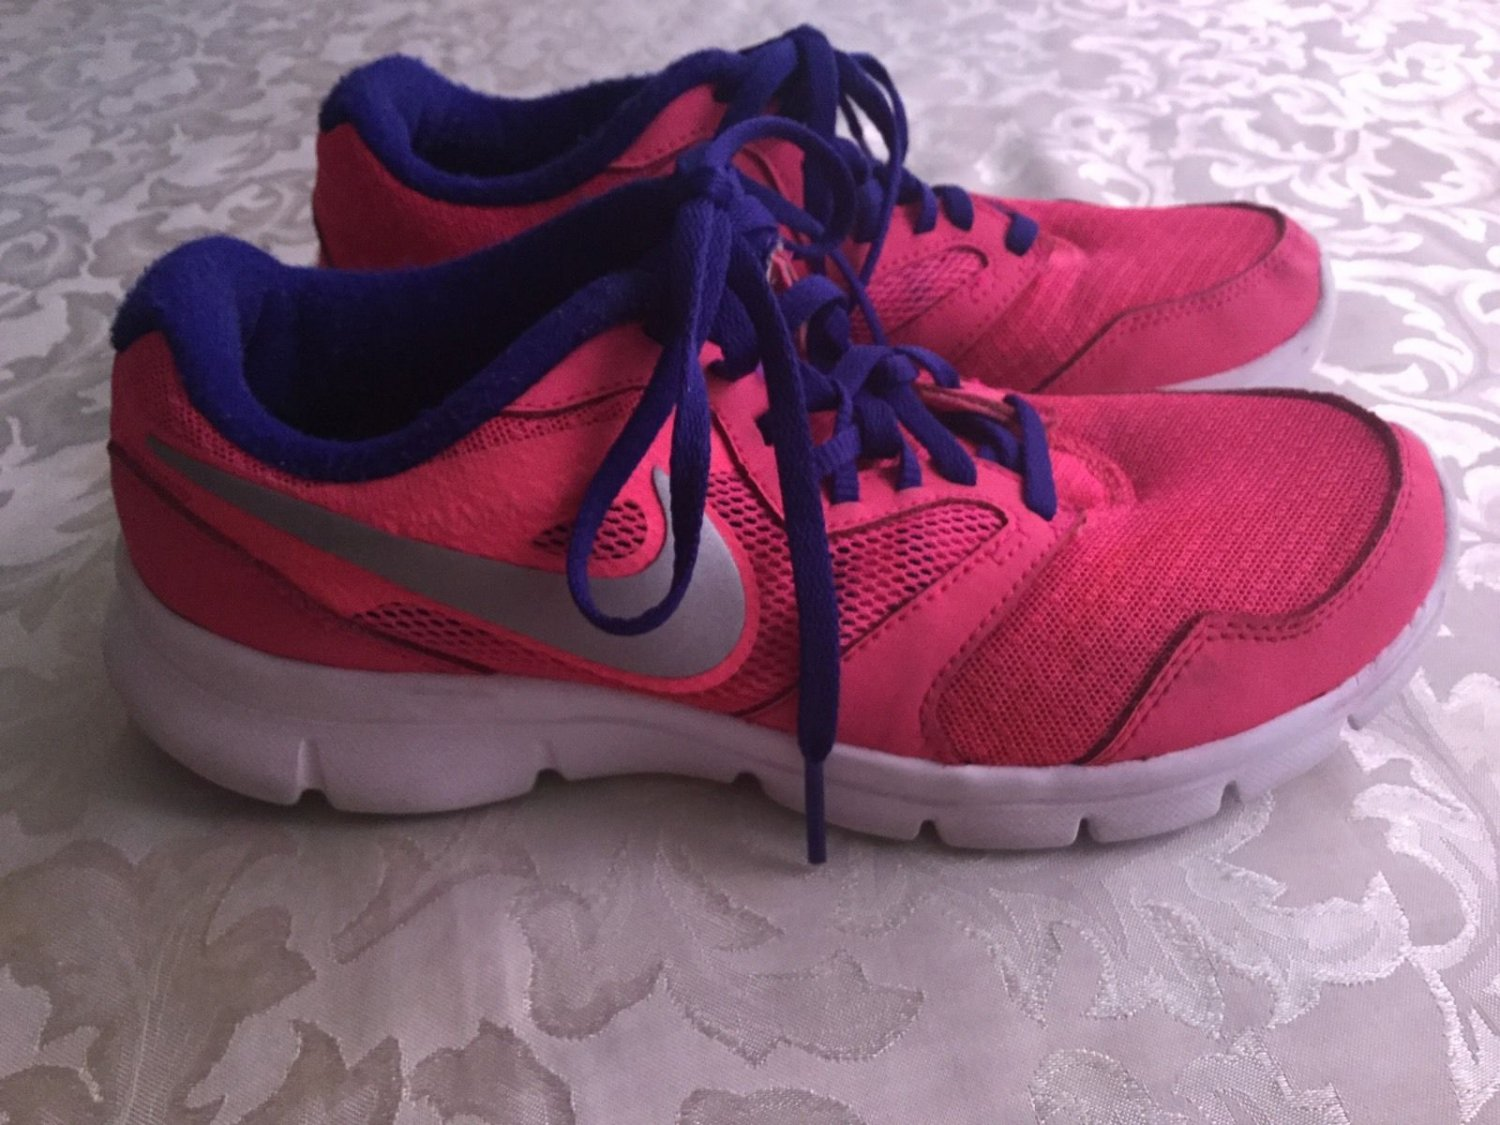 Girls Nike shoes Size 5 Flex Experience RN 3 Pink blue sports athletic running